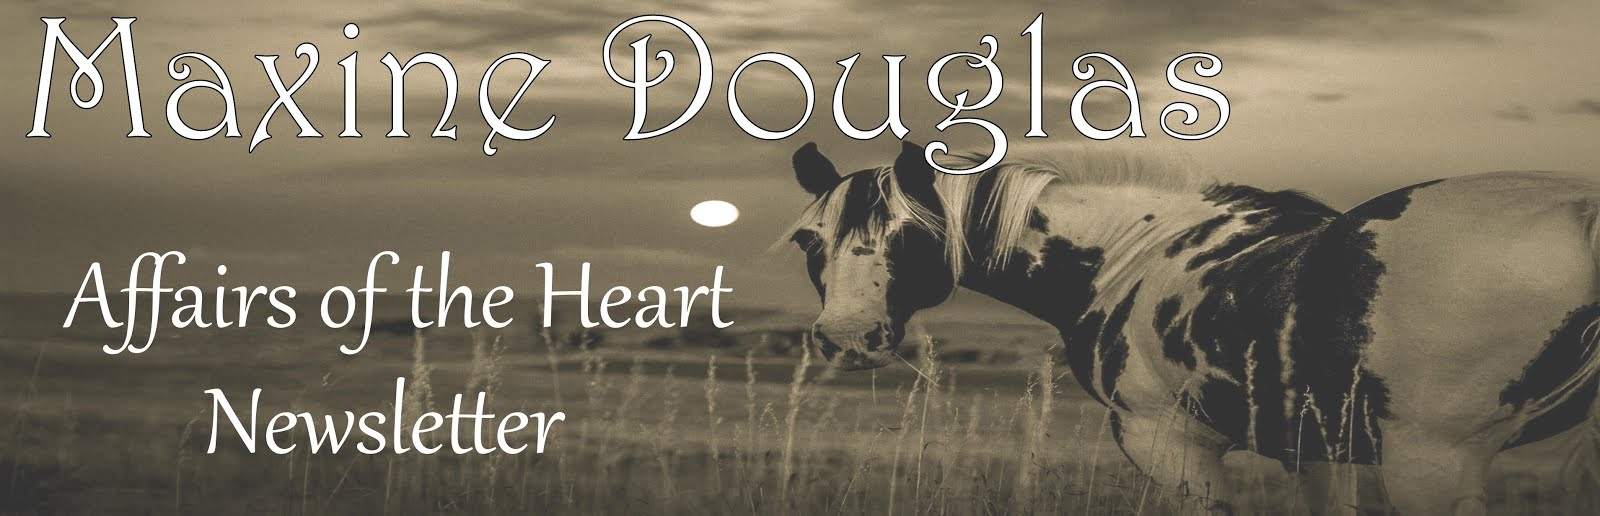 Maxine Douglas Affairs of the Heart Newsletter